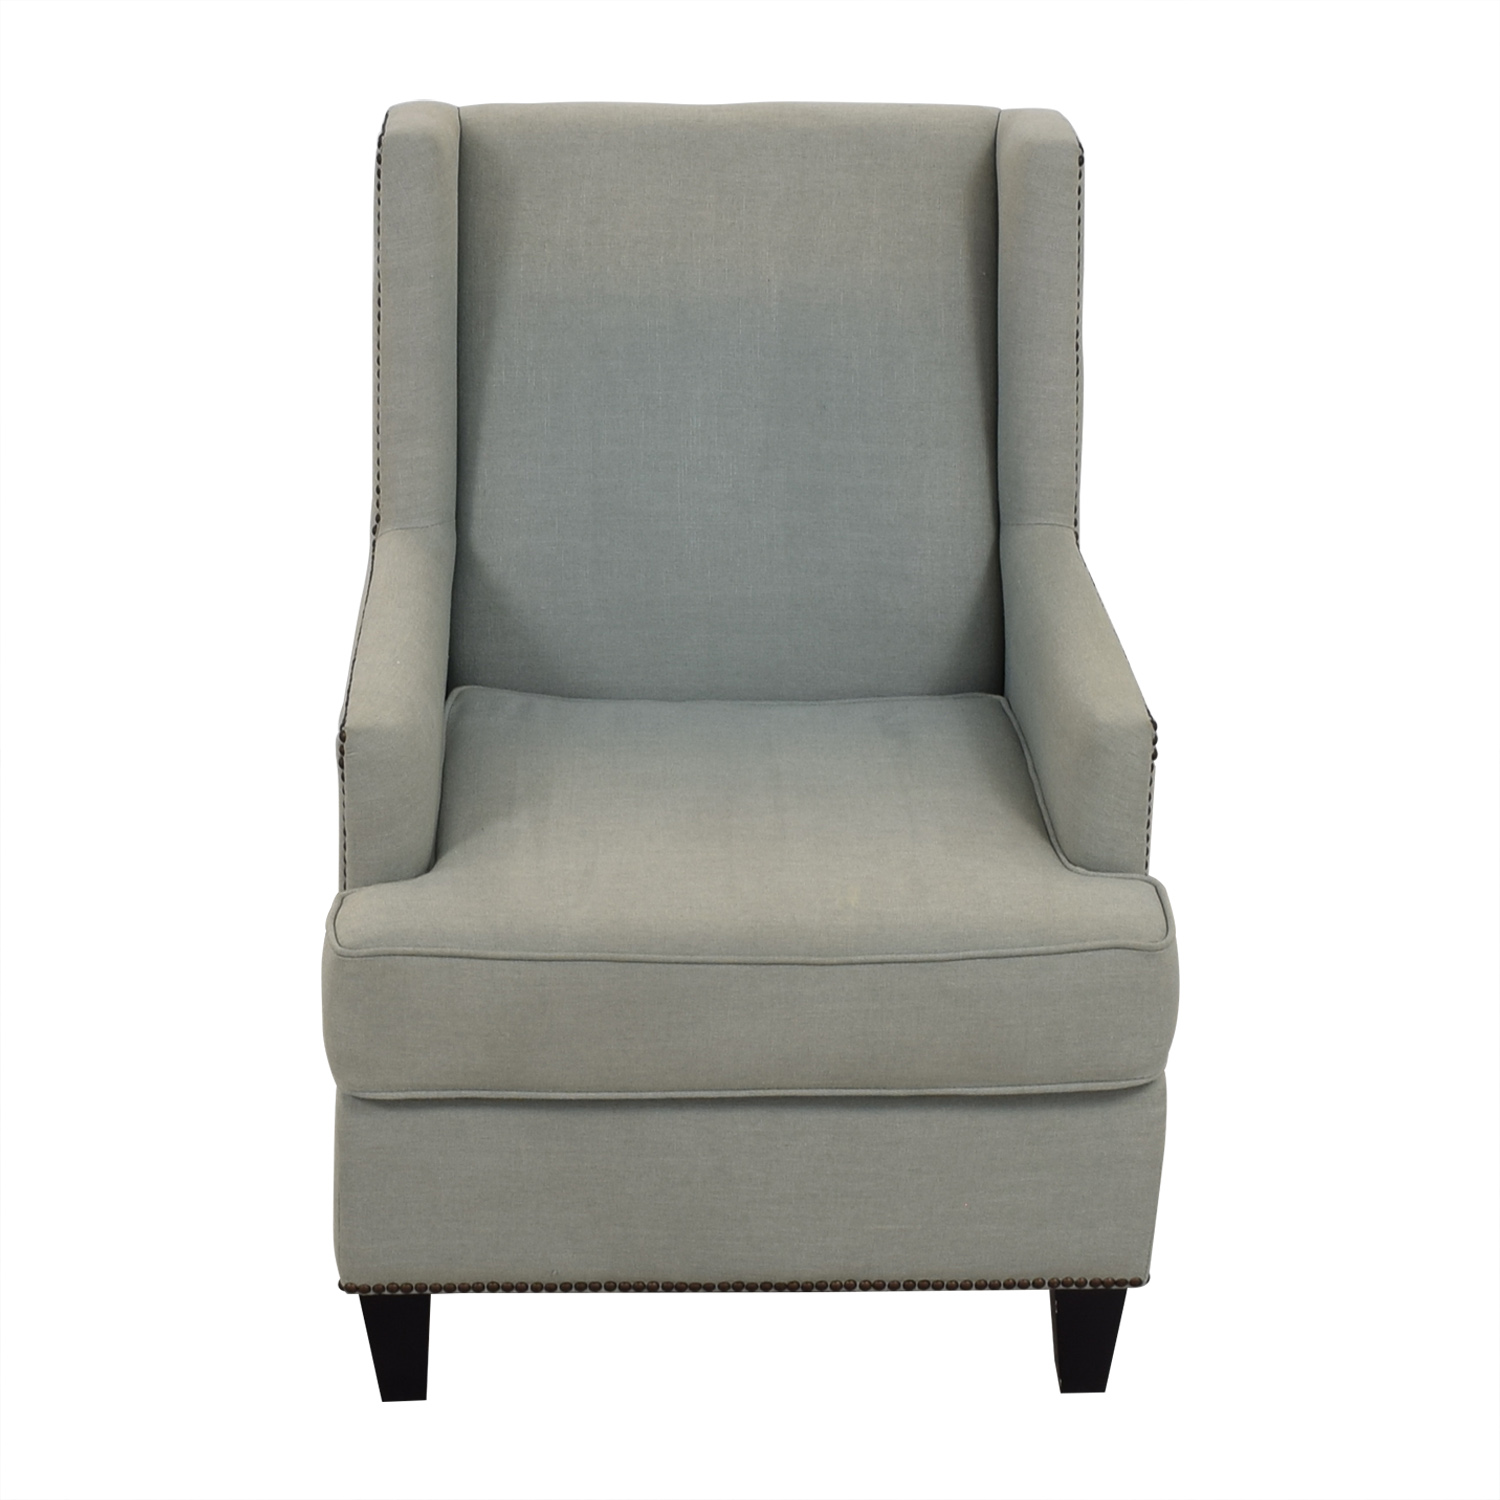 Upholstered Accent Chairs With Arms 90 Off One Kings Lane One Kings Lane Blue Upholstered